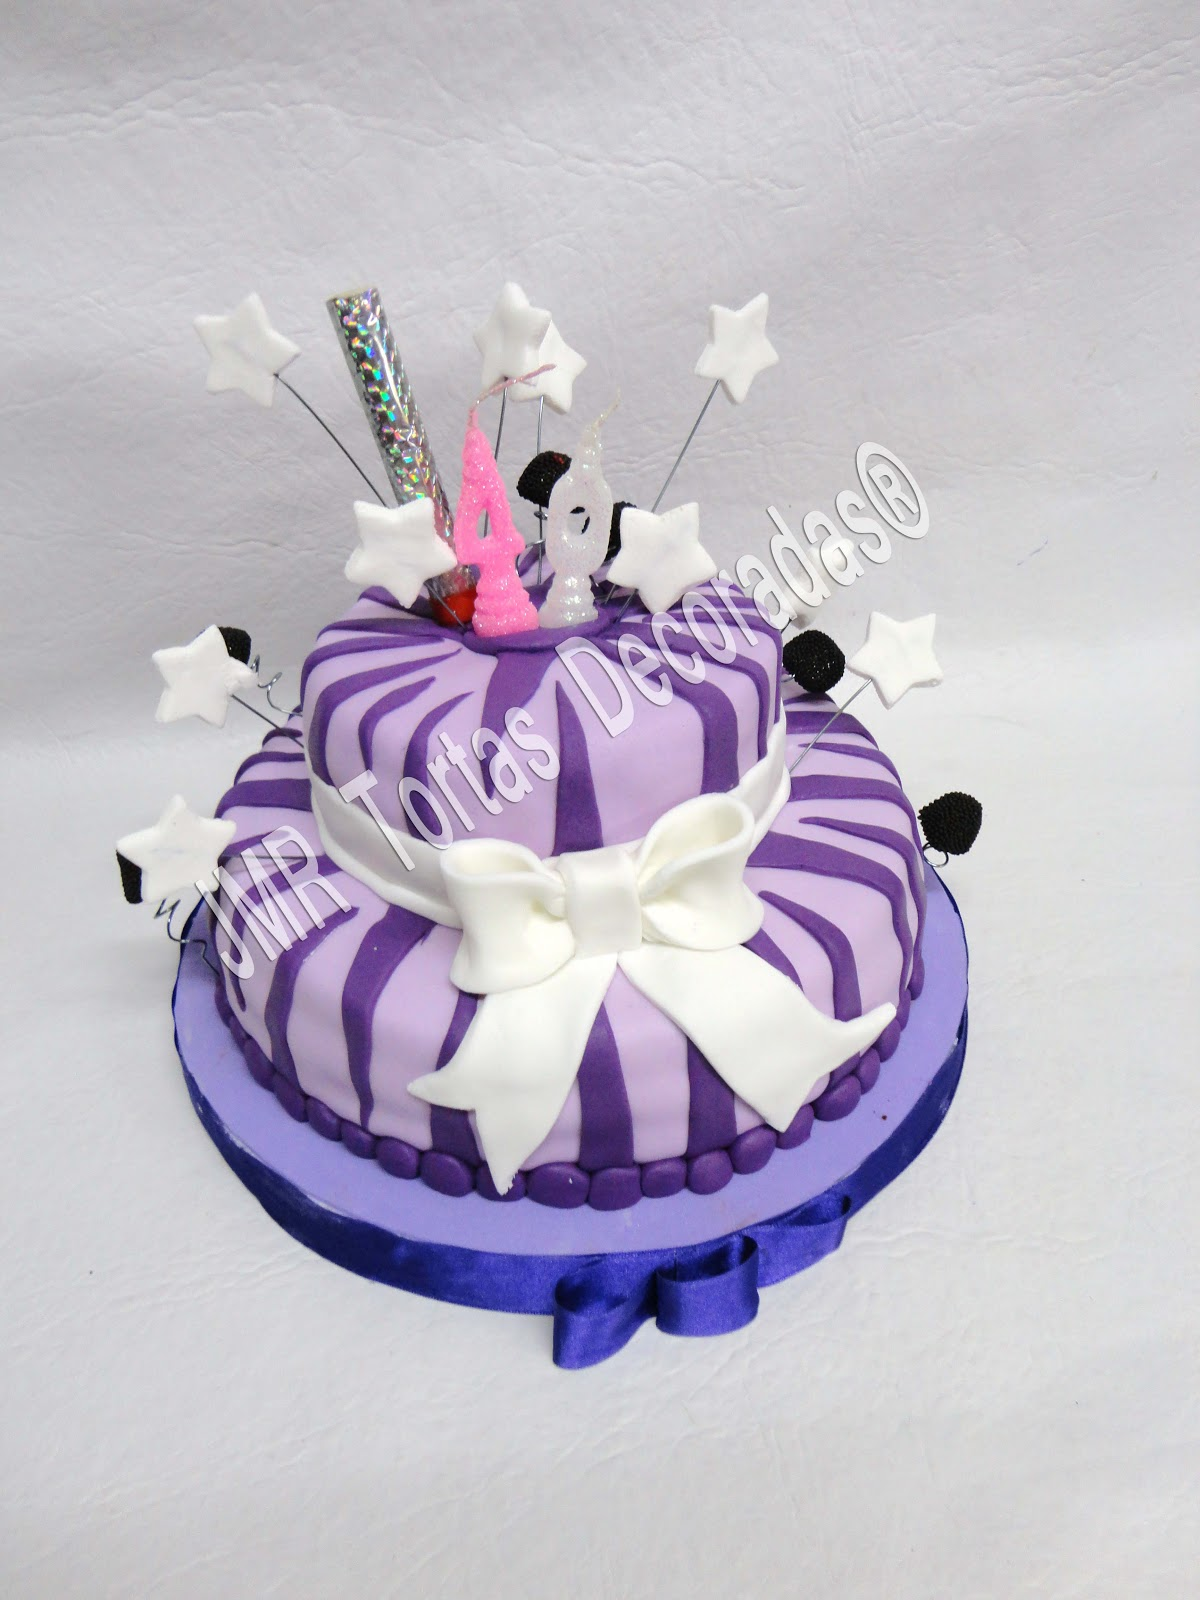 Animal Print Violeta Jmr Tortas Decoradas